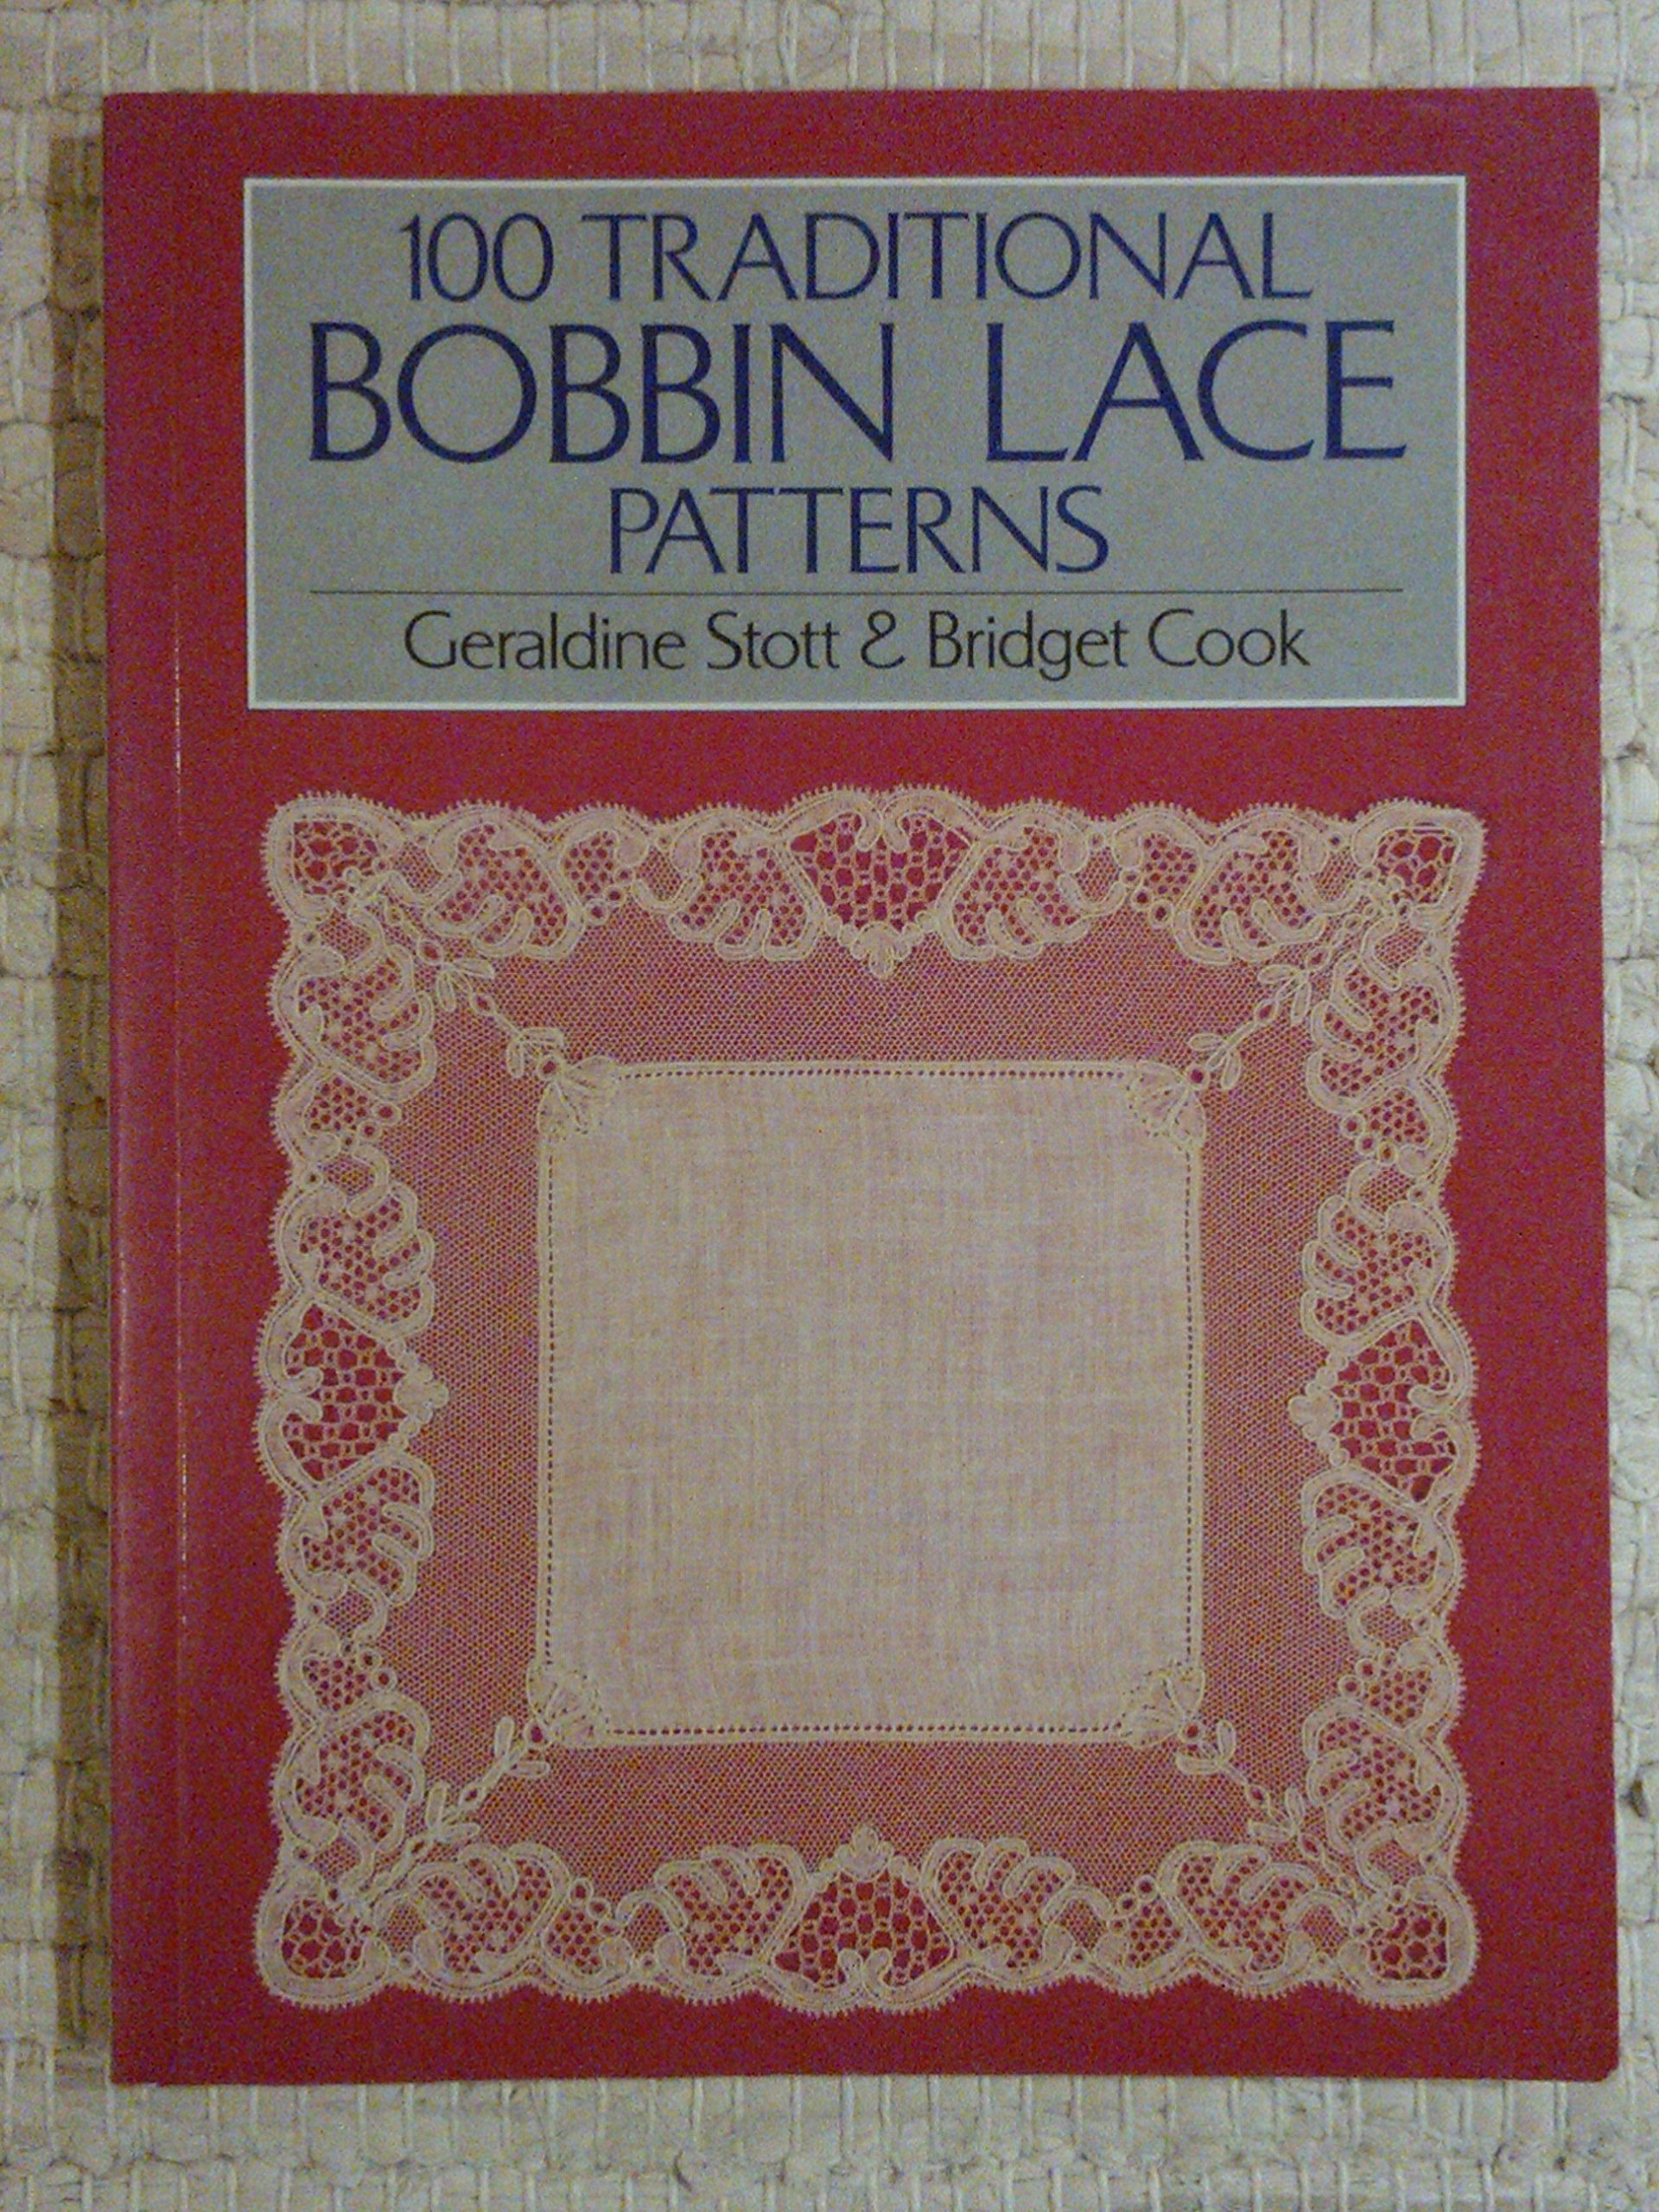 One Hundred Traditional Bobbin Lace Patterns Batsford Lace 9780713439311 Amazon Com Books